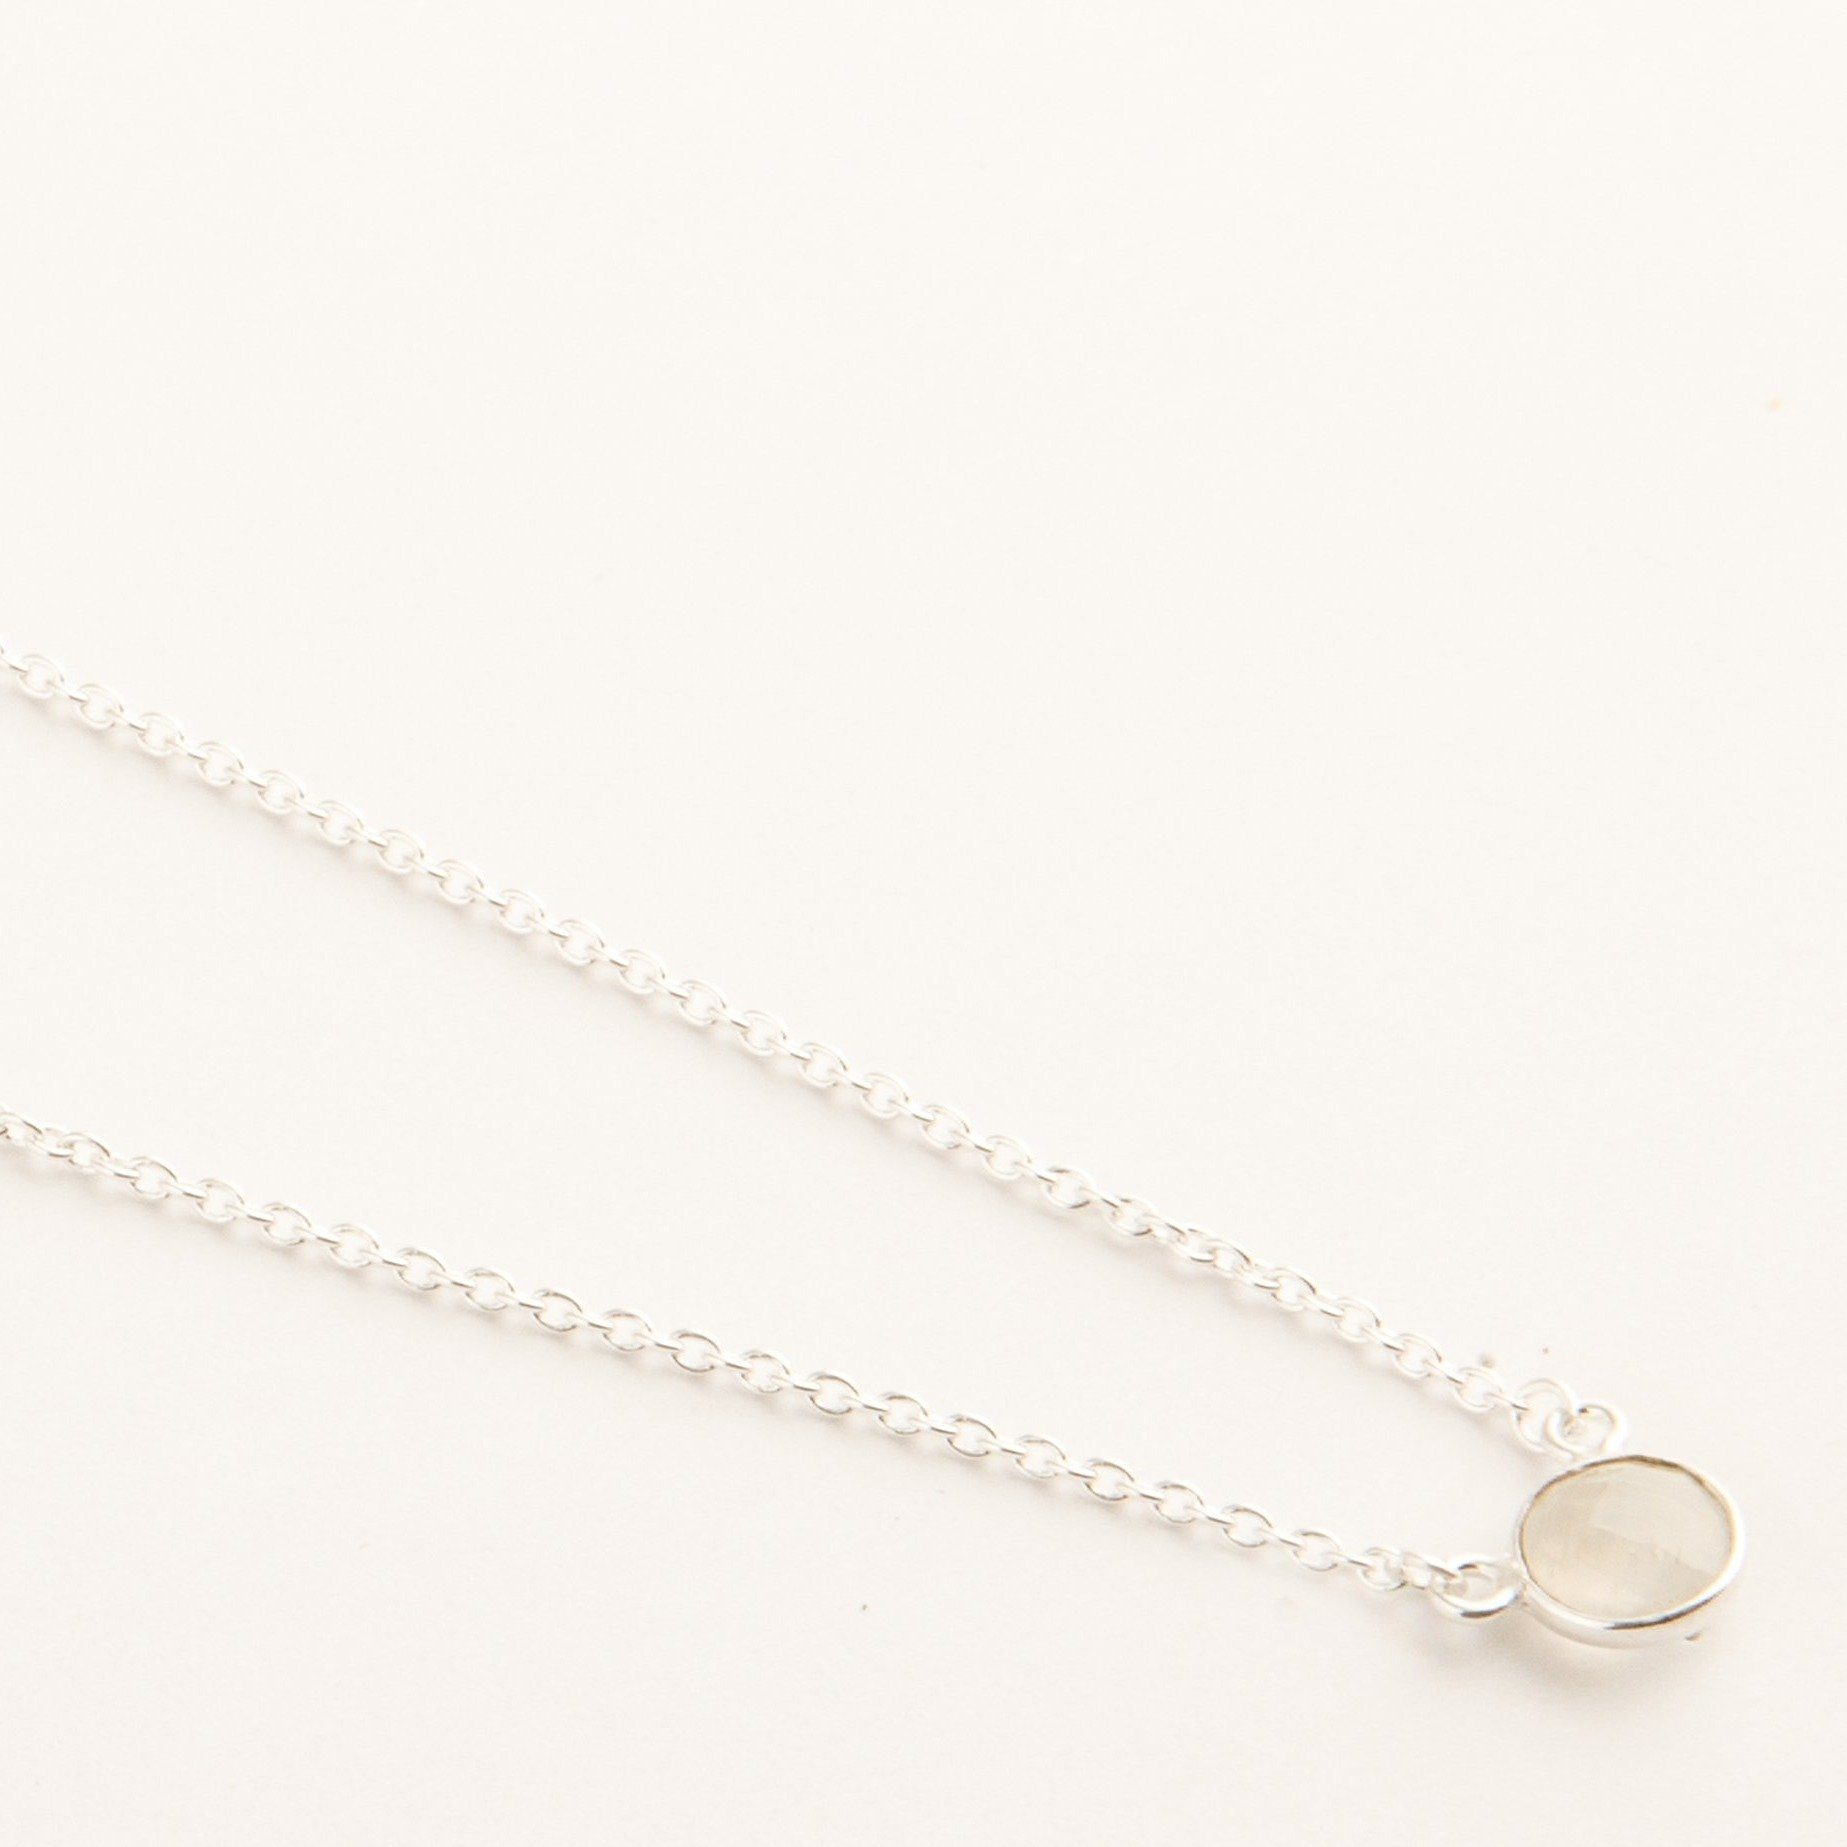 Adele mini silver round chain in rainbow moonstone - Neckpieces